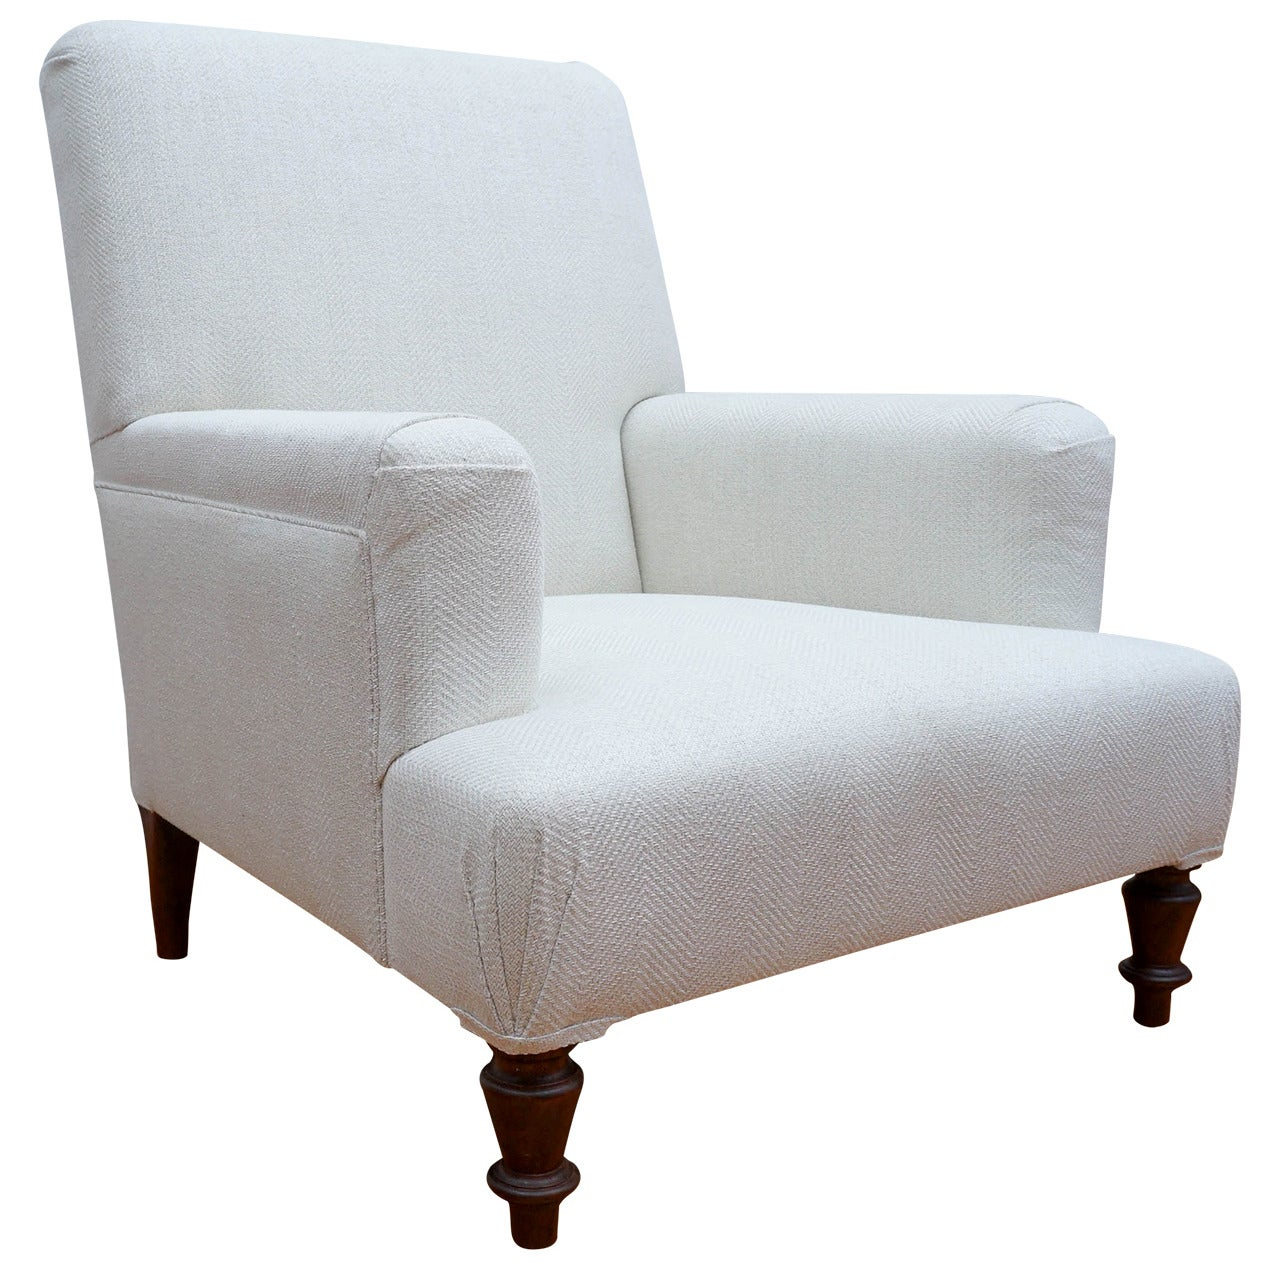 Upholstered Club Chair Custom Quotprovence Quot Upholstered Club Chair For Sale At 1stdibs